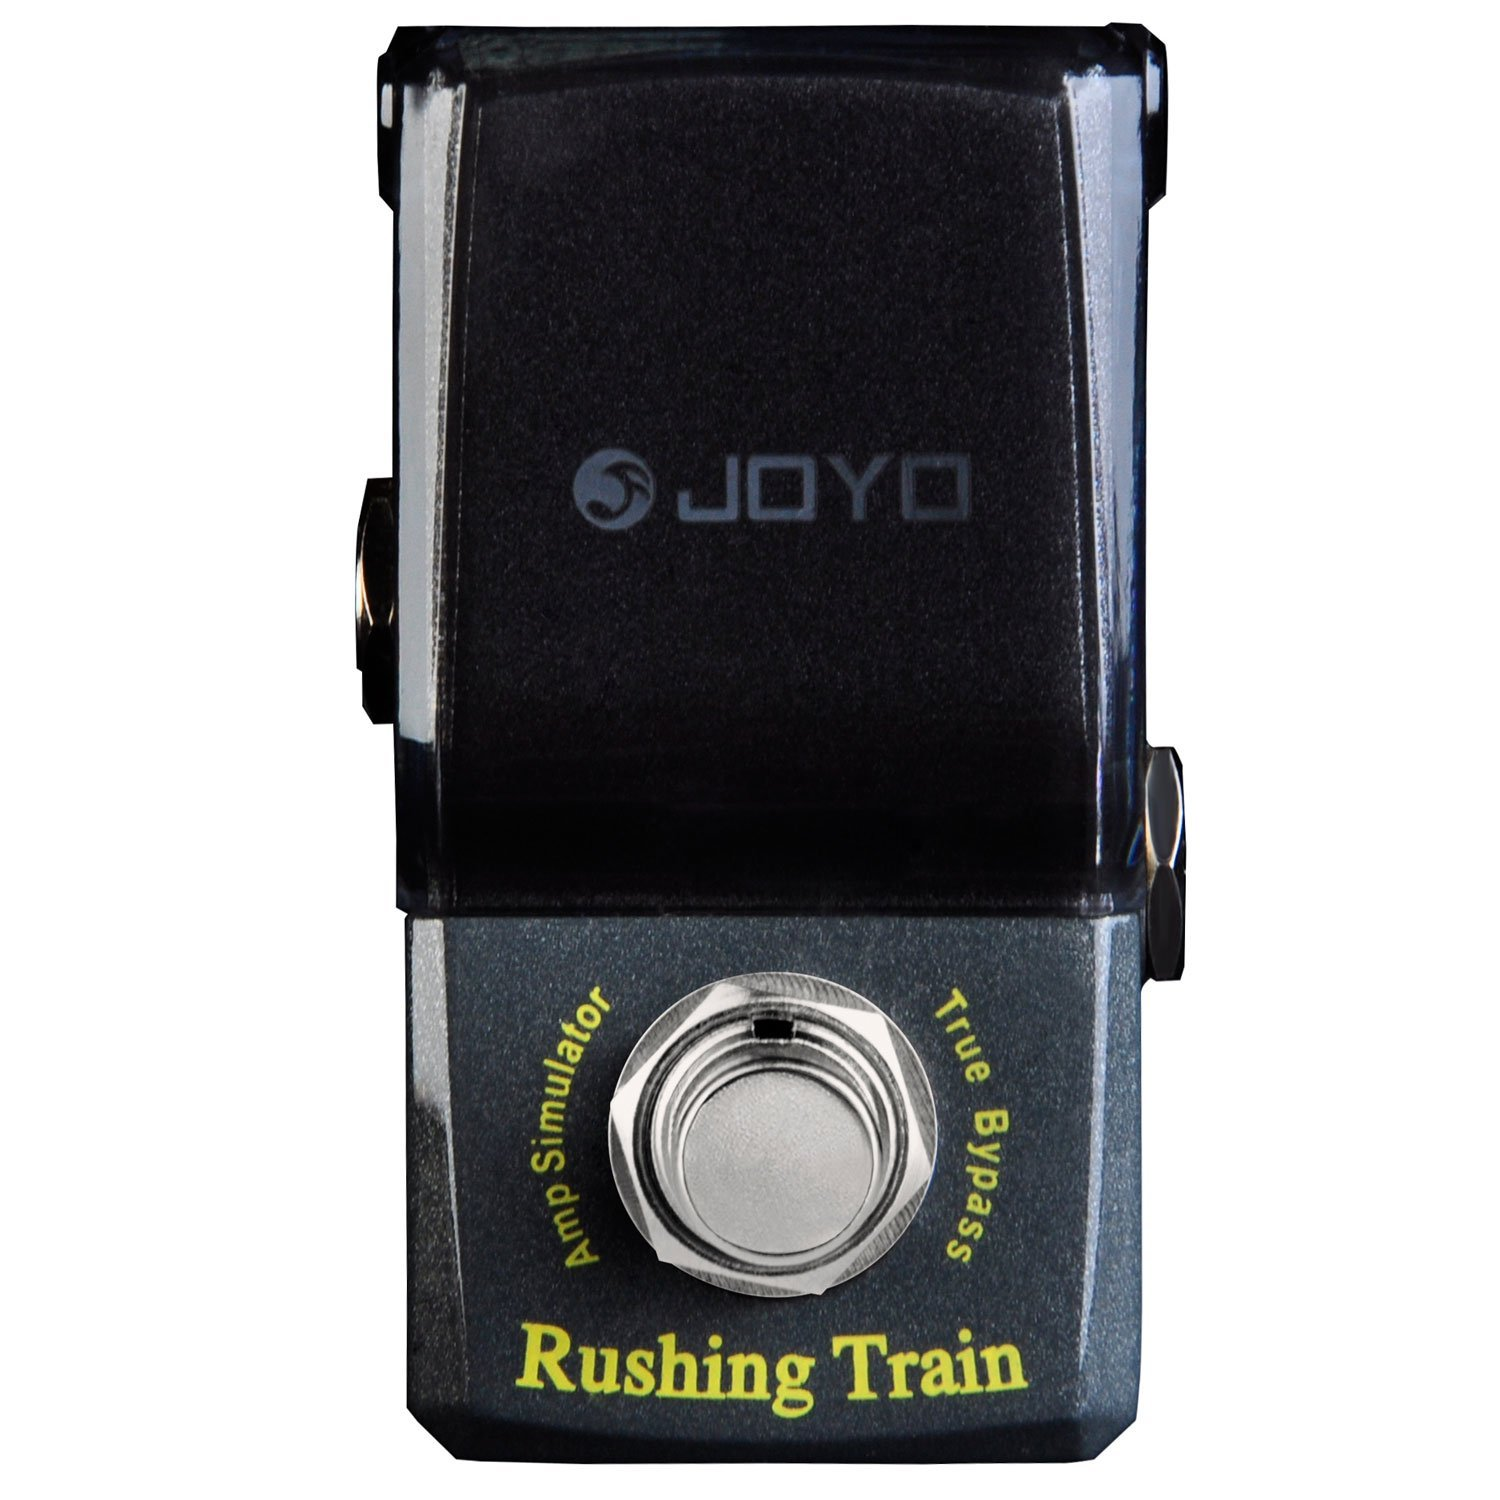 [JF 306 Rushing Train]